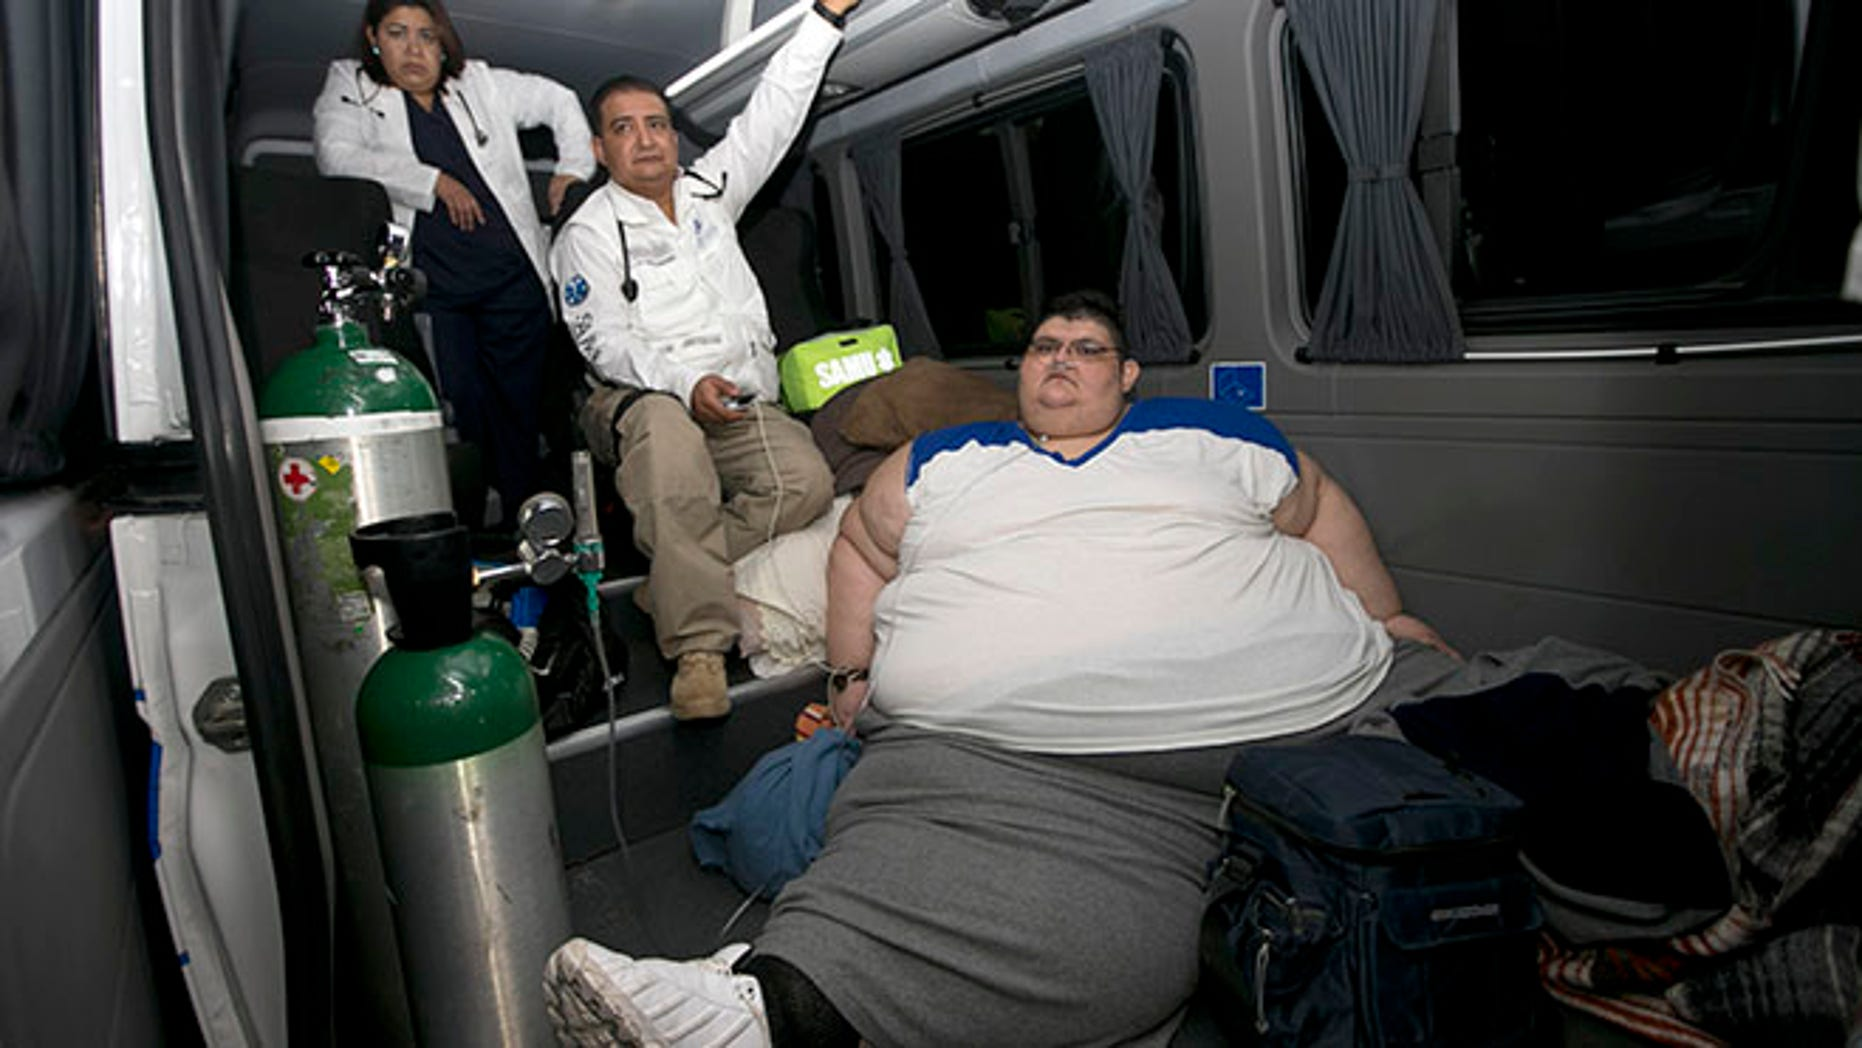 Juan Pedro is taken care of by paramedics on arrival at hospital in Guadalajara, Mexico, Tuesday, Nov. 15, 2016. Juan Pedro,who weighs about 1,100 pounds (500 kilos) and hasn't left his bed in six years has been removed by medical personnel for treatment. His doctor gave the man's name only as Juan Pedro, 32, from the central city of Aguascalientes. (AP Photo/Refugio Ruiz)